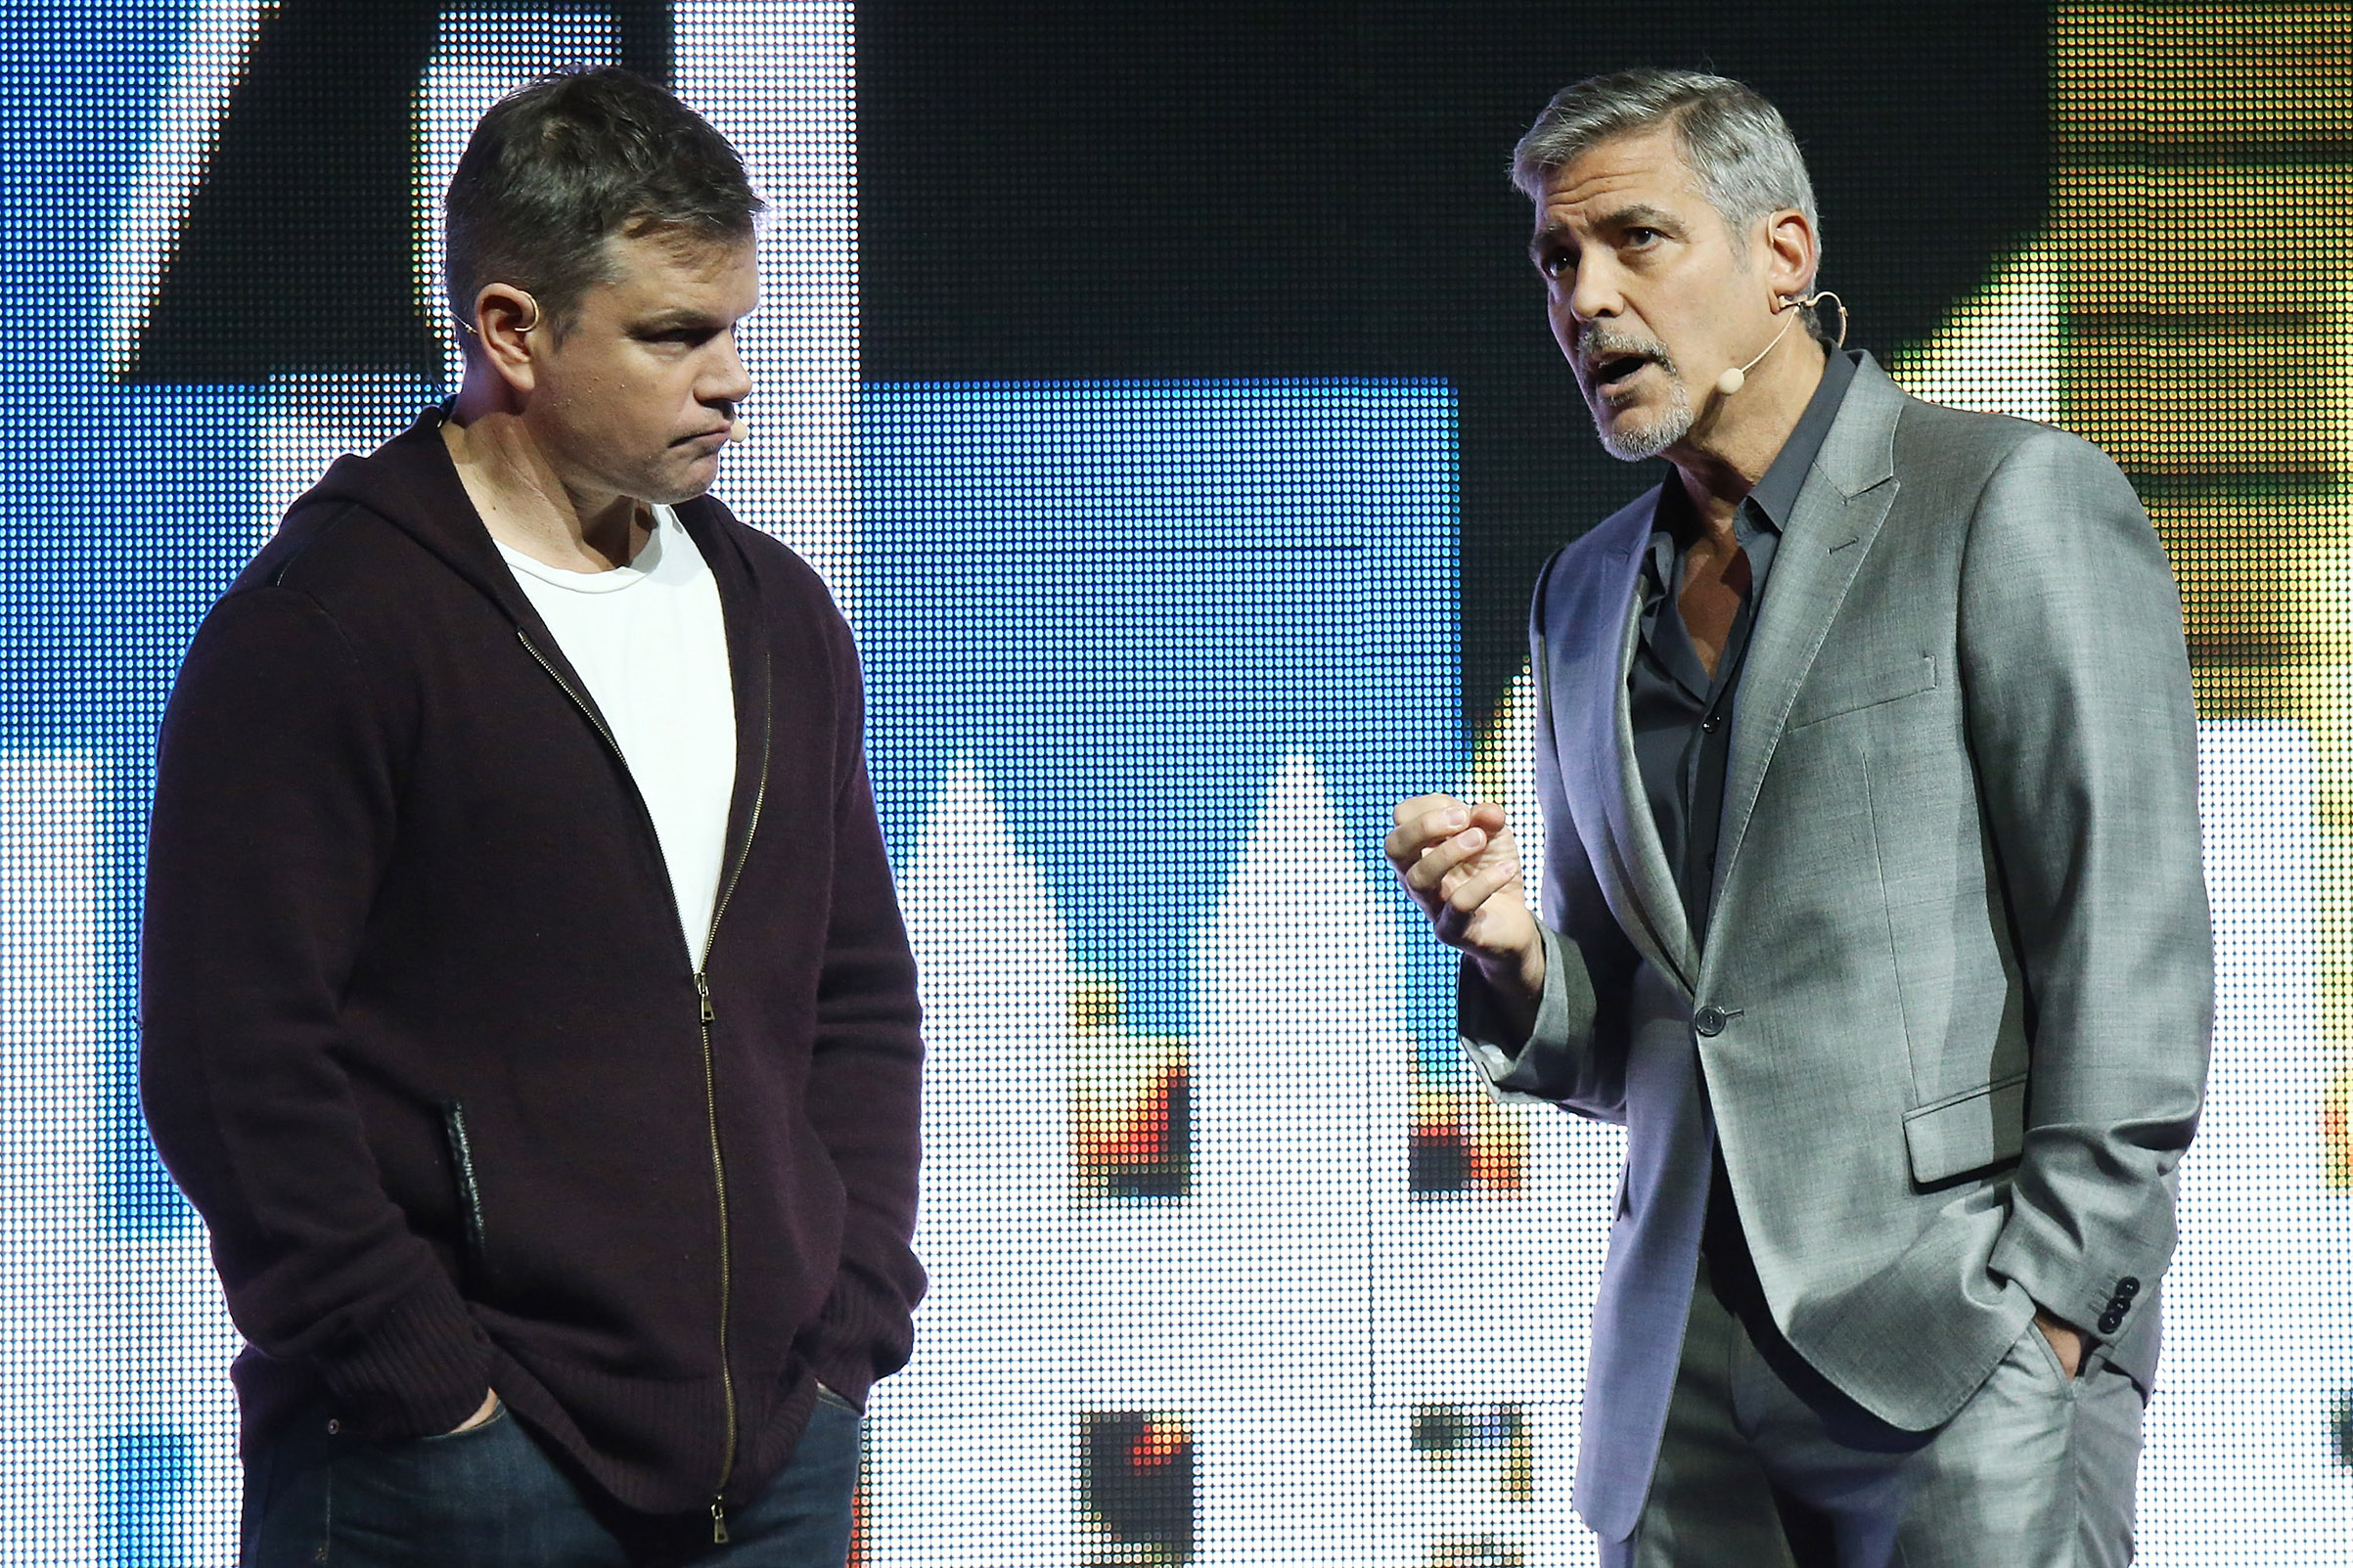 Matt Damon and George Clooney speak onstage at the Paramount Pictures' presentation, on March 28, 2017 in Las Vegas.